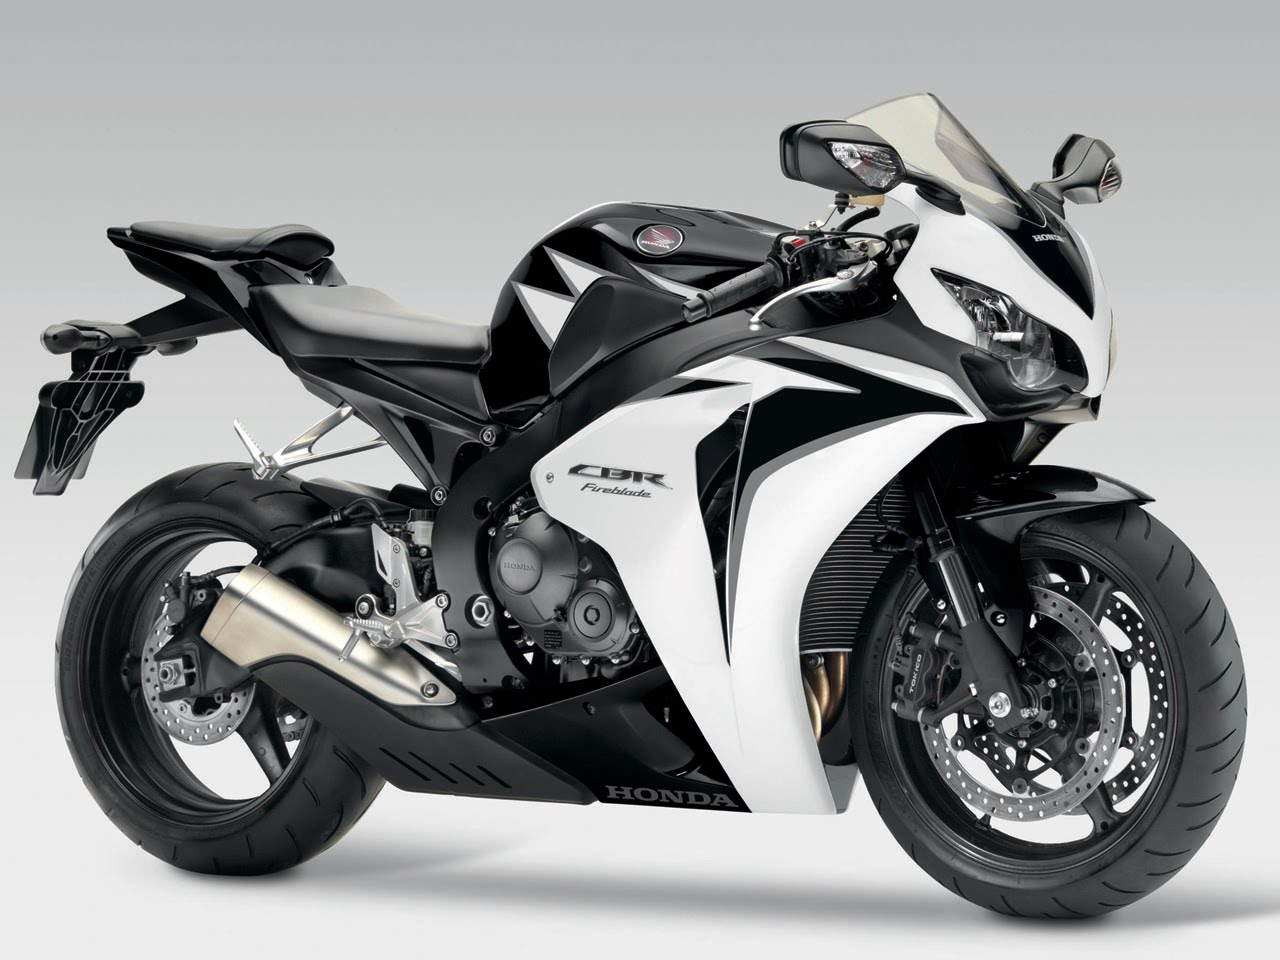 Honda Cbr1000rr Fireblade World Of Top Autos